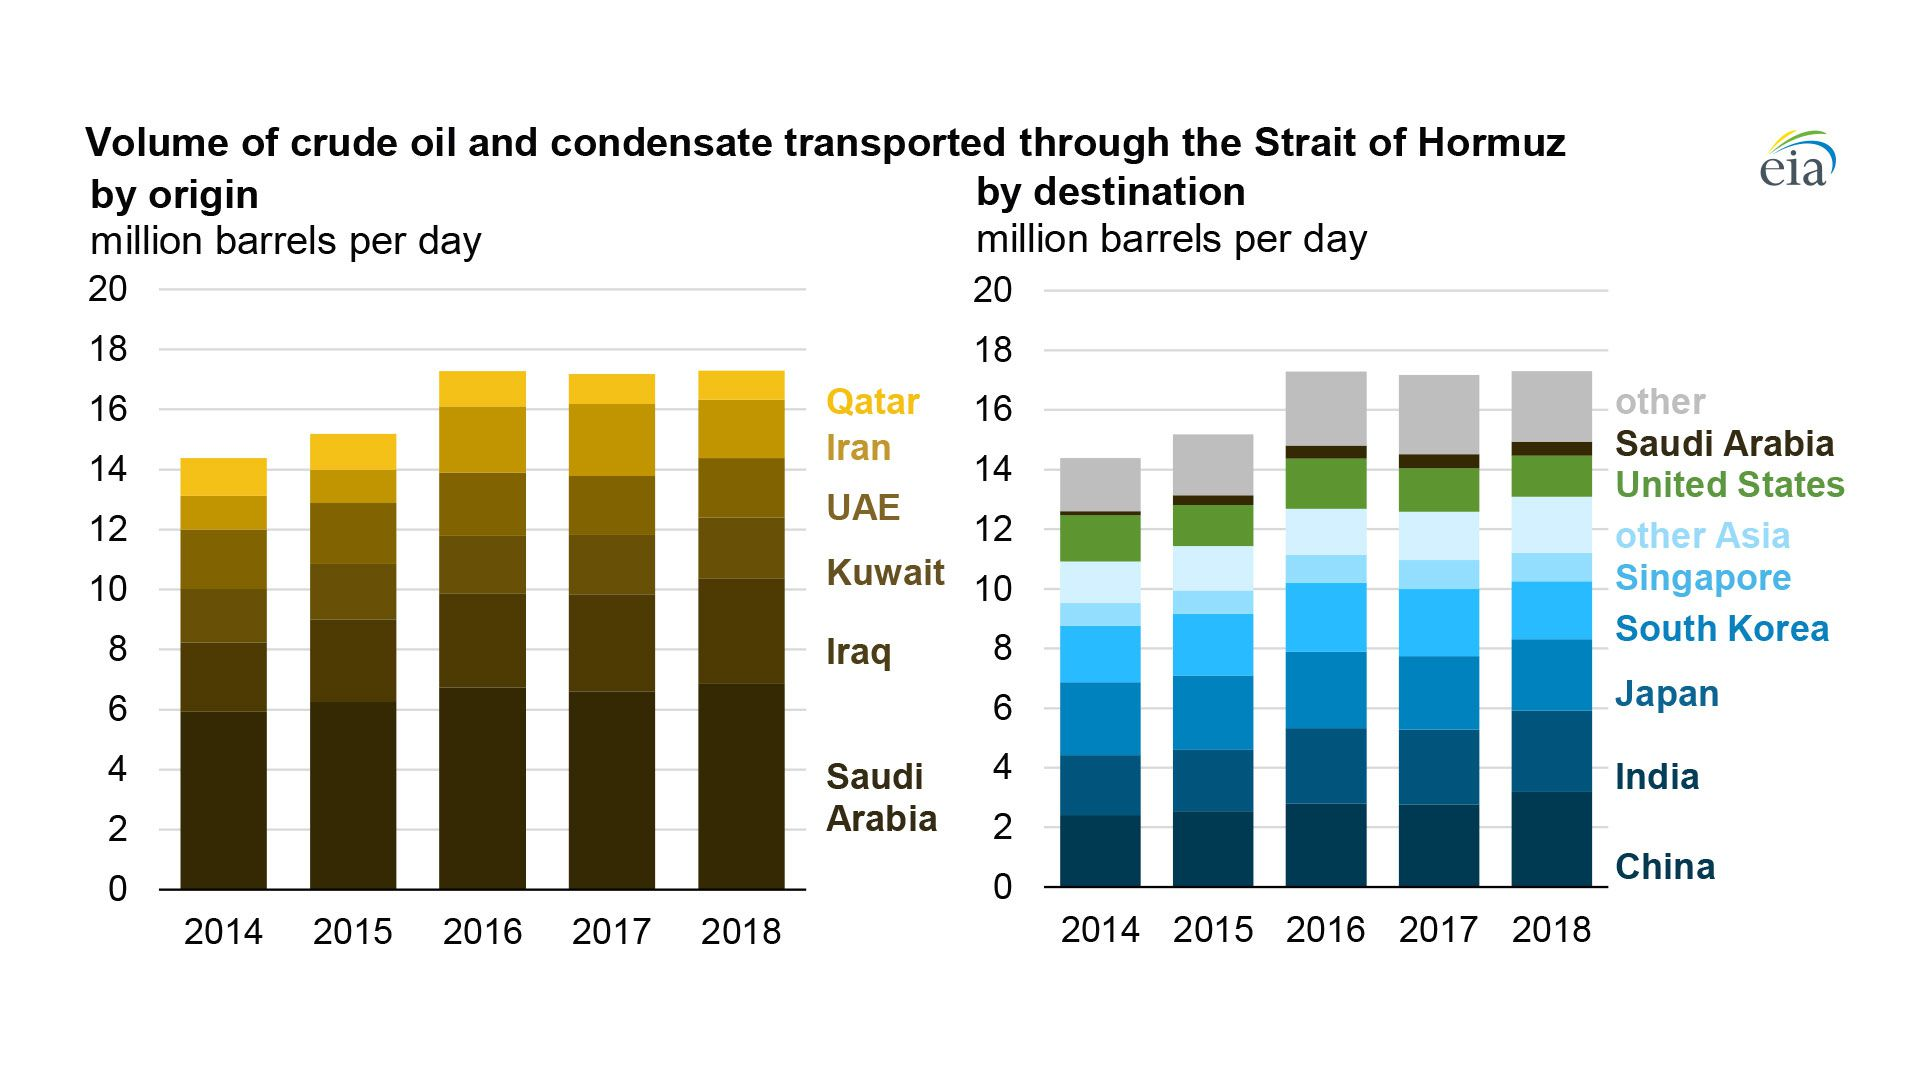 Chart showing origin and destination of oil shipped in the Strait of Hormuz